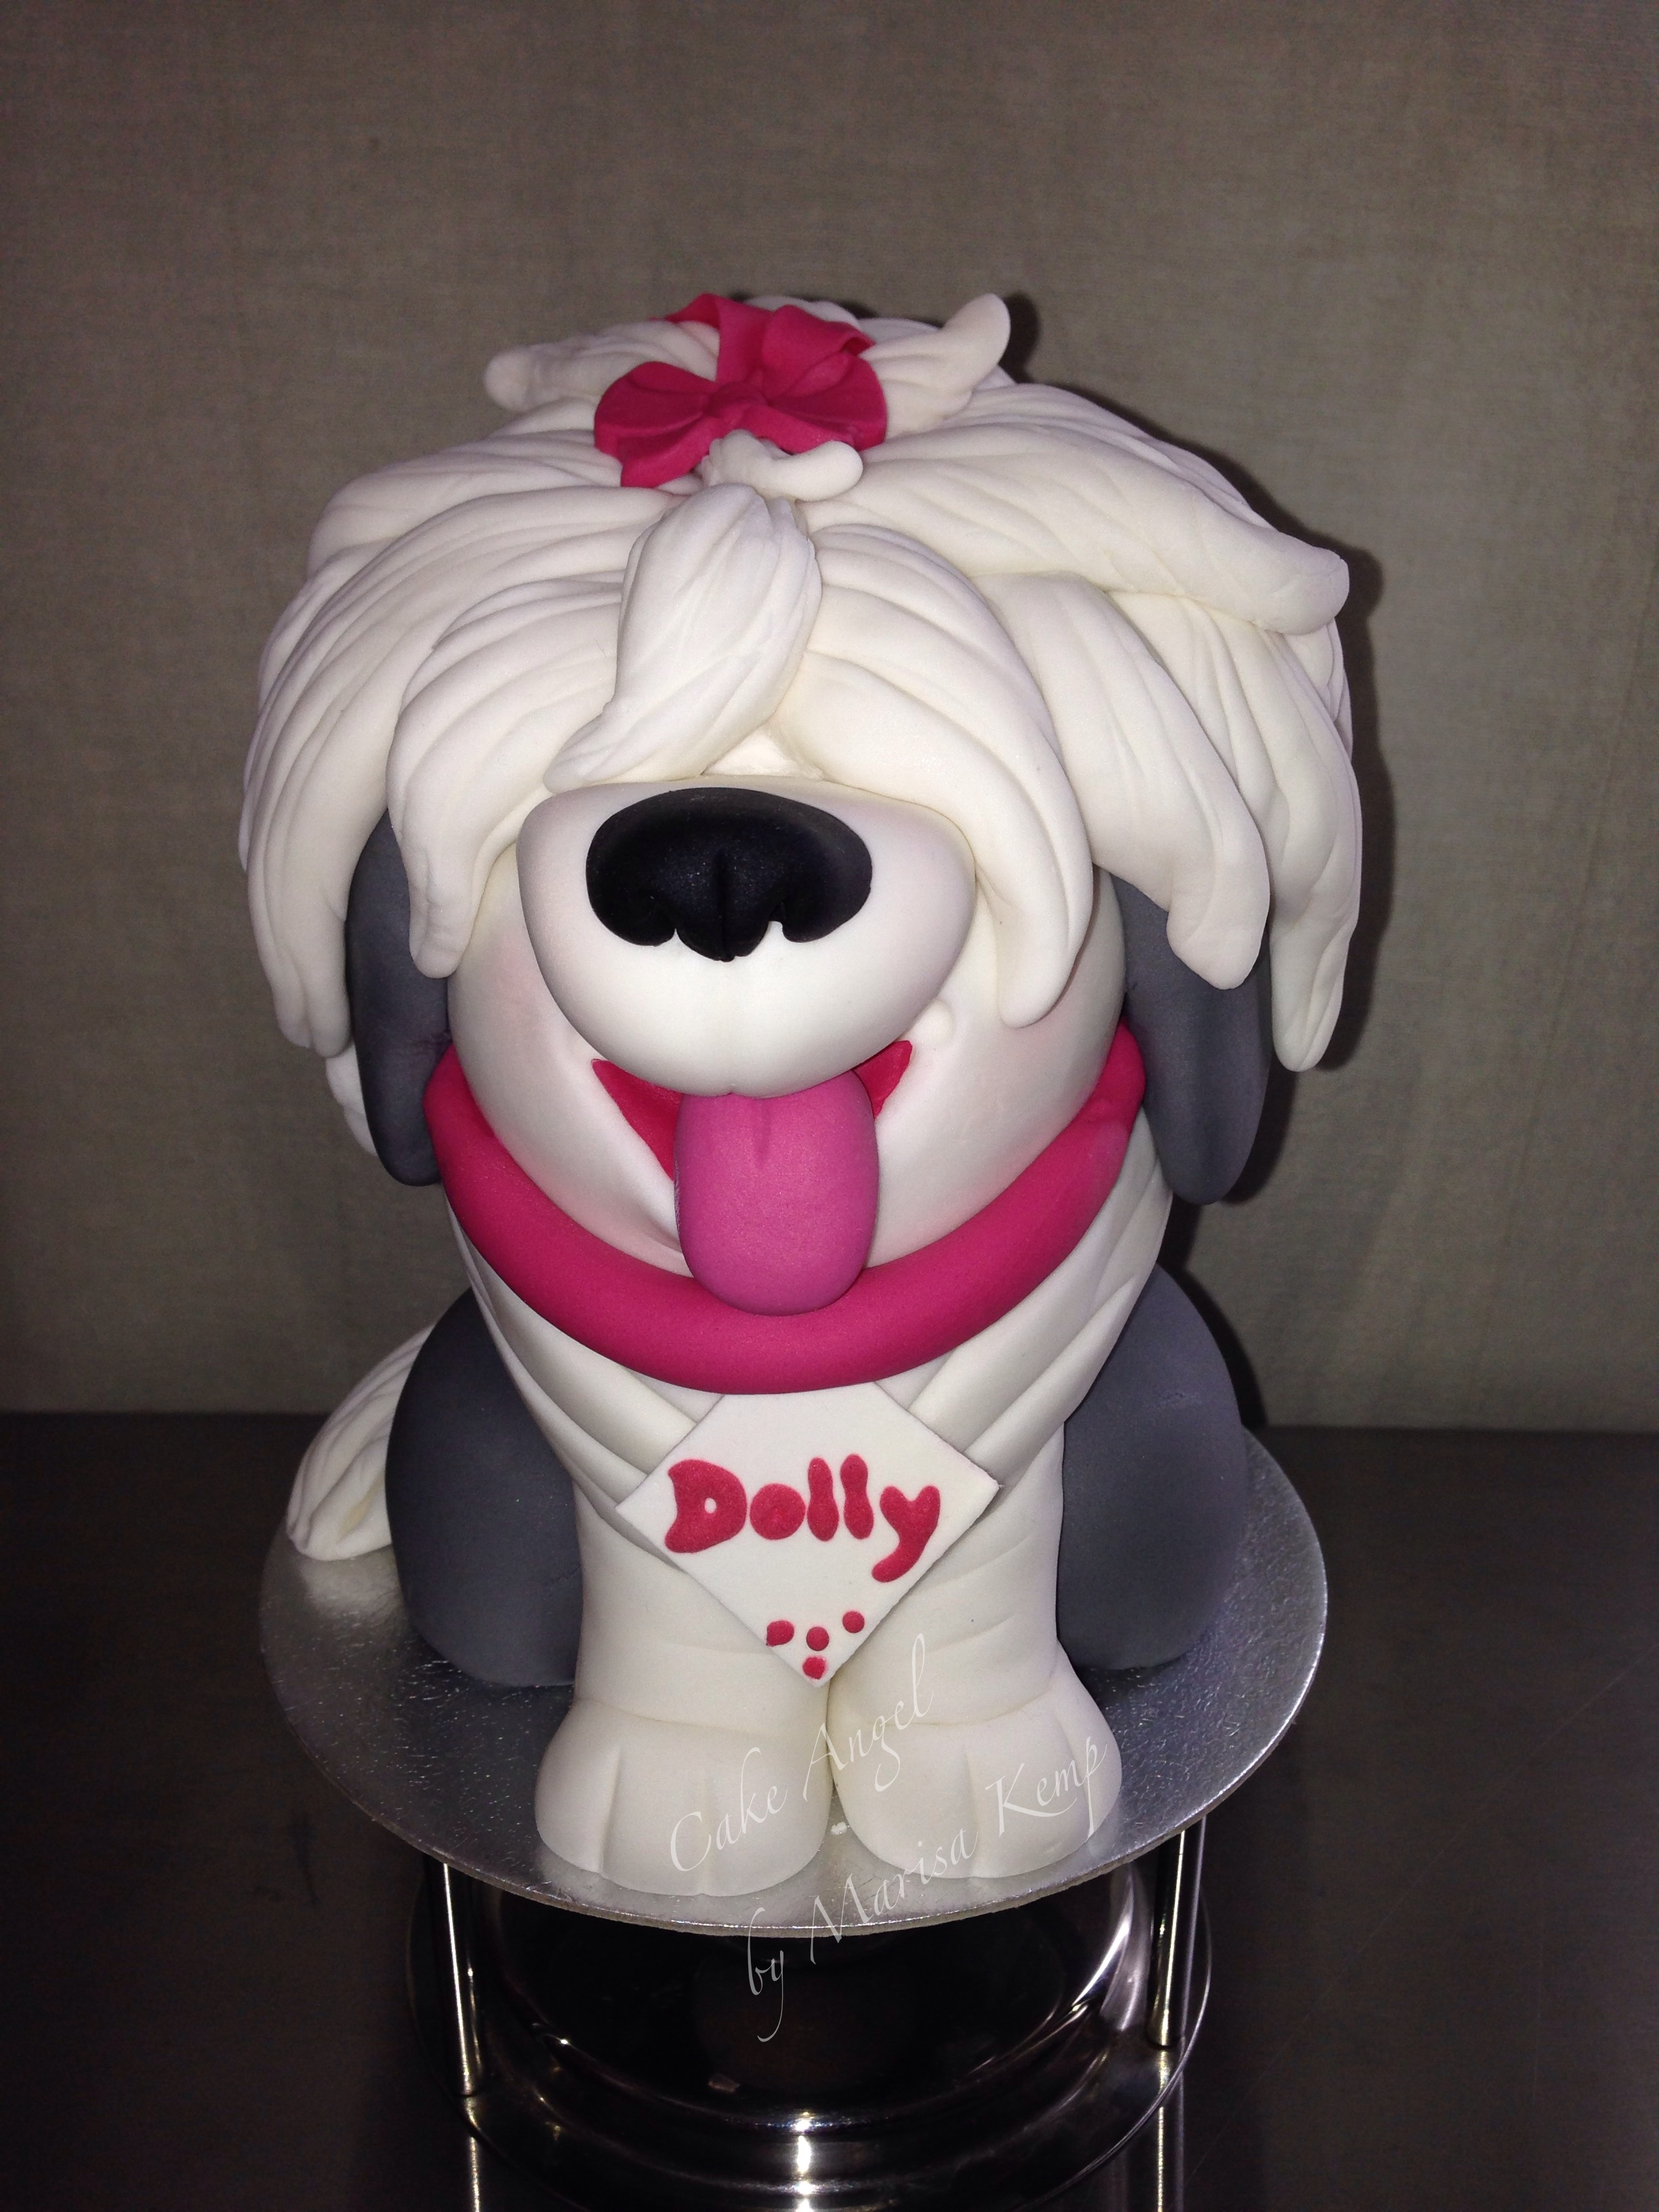 Dolly, sculpted cake inspired by Carlos Lischetti's